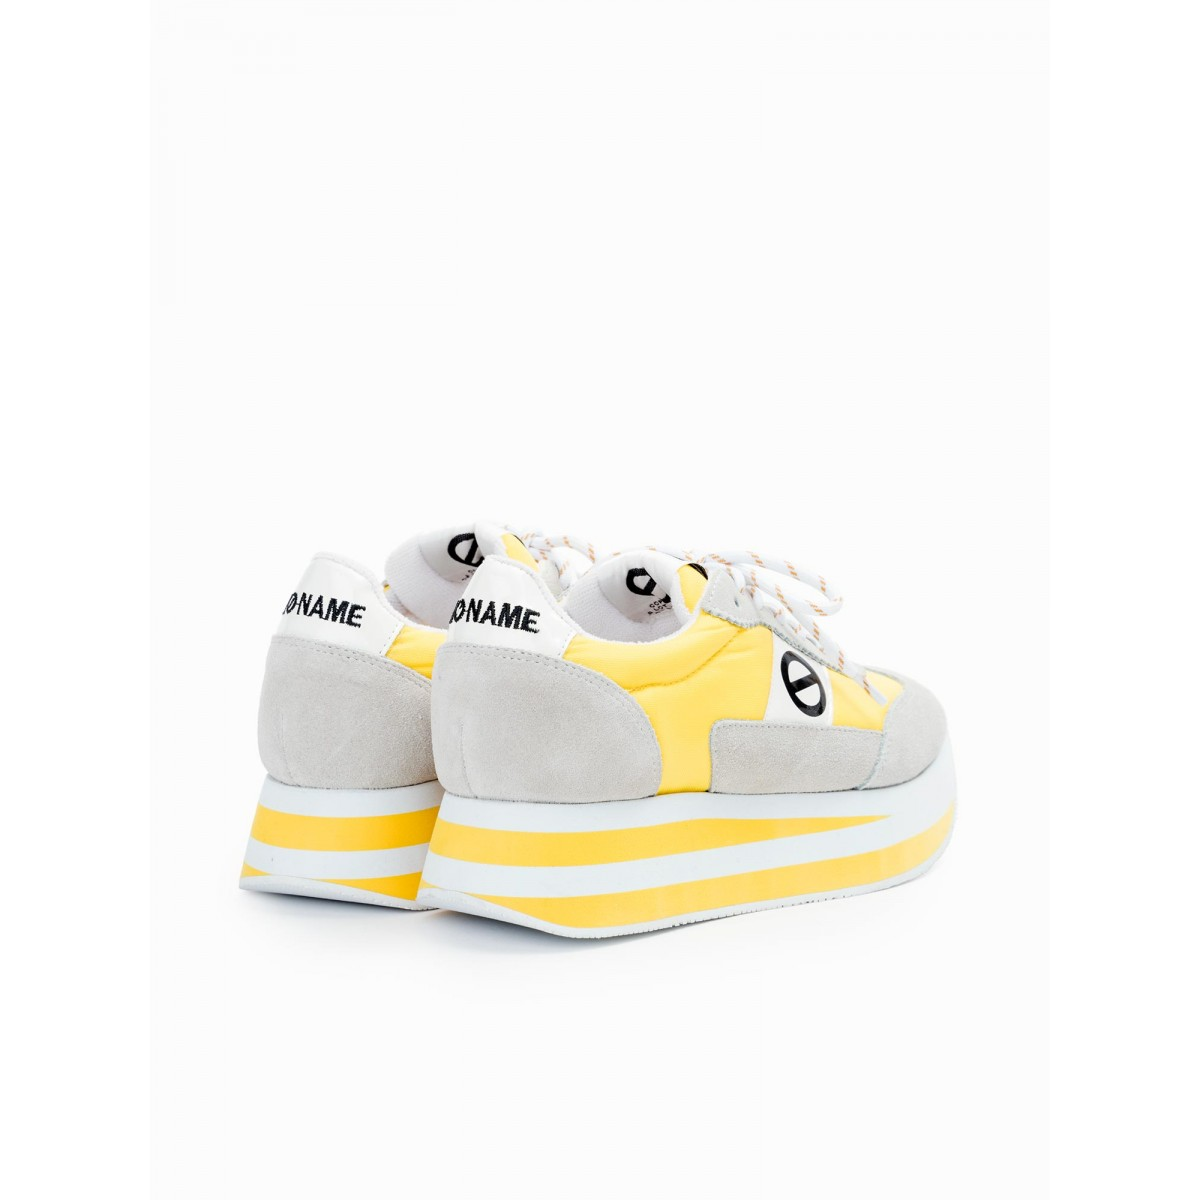 No Name FLEX JOGGER - SUEDE/NYLON - WHITE/YELLOW